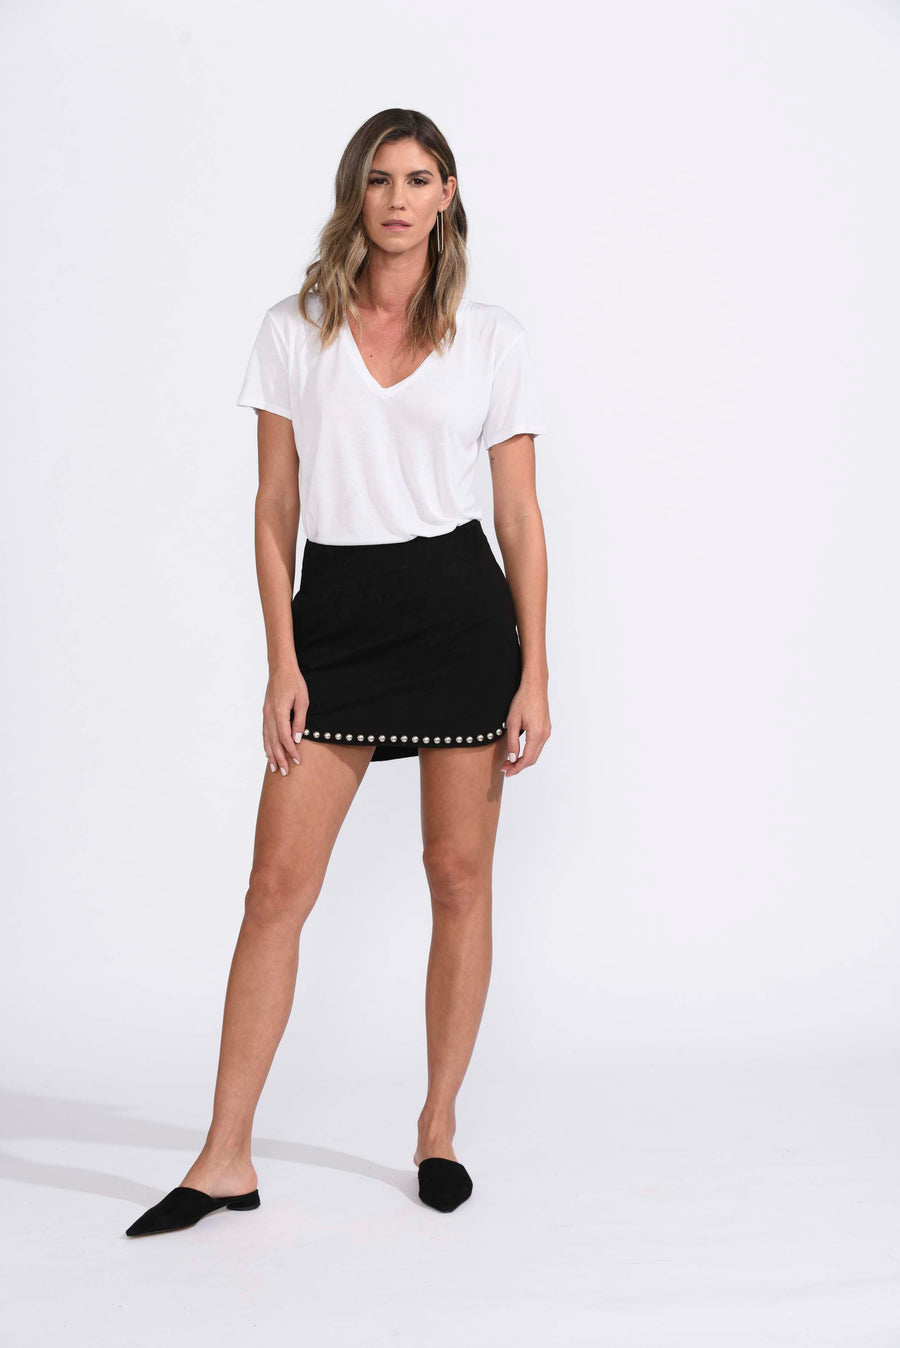 Karina Grimaldi Florence Studded Skirt in Black